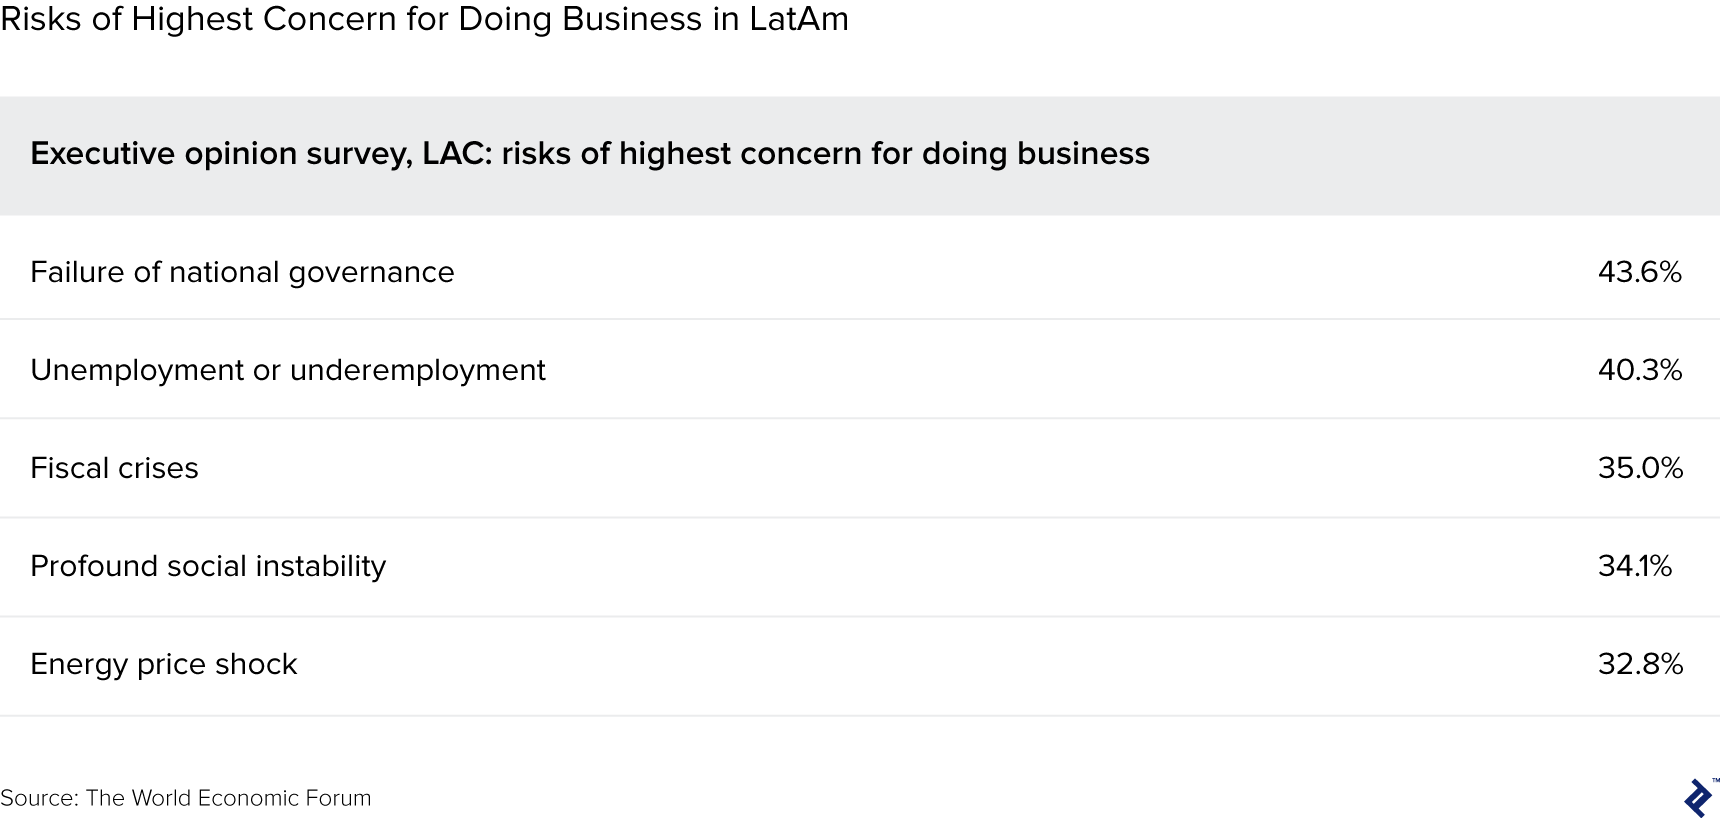 table illustrating risks of highest concern for doing business in latin america